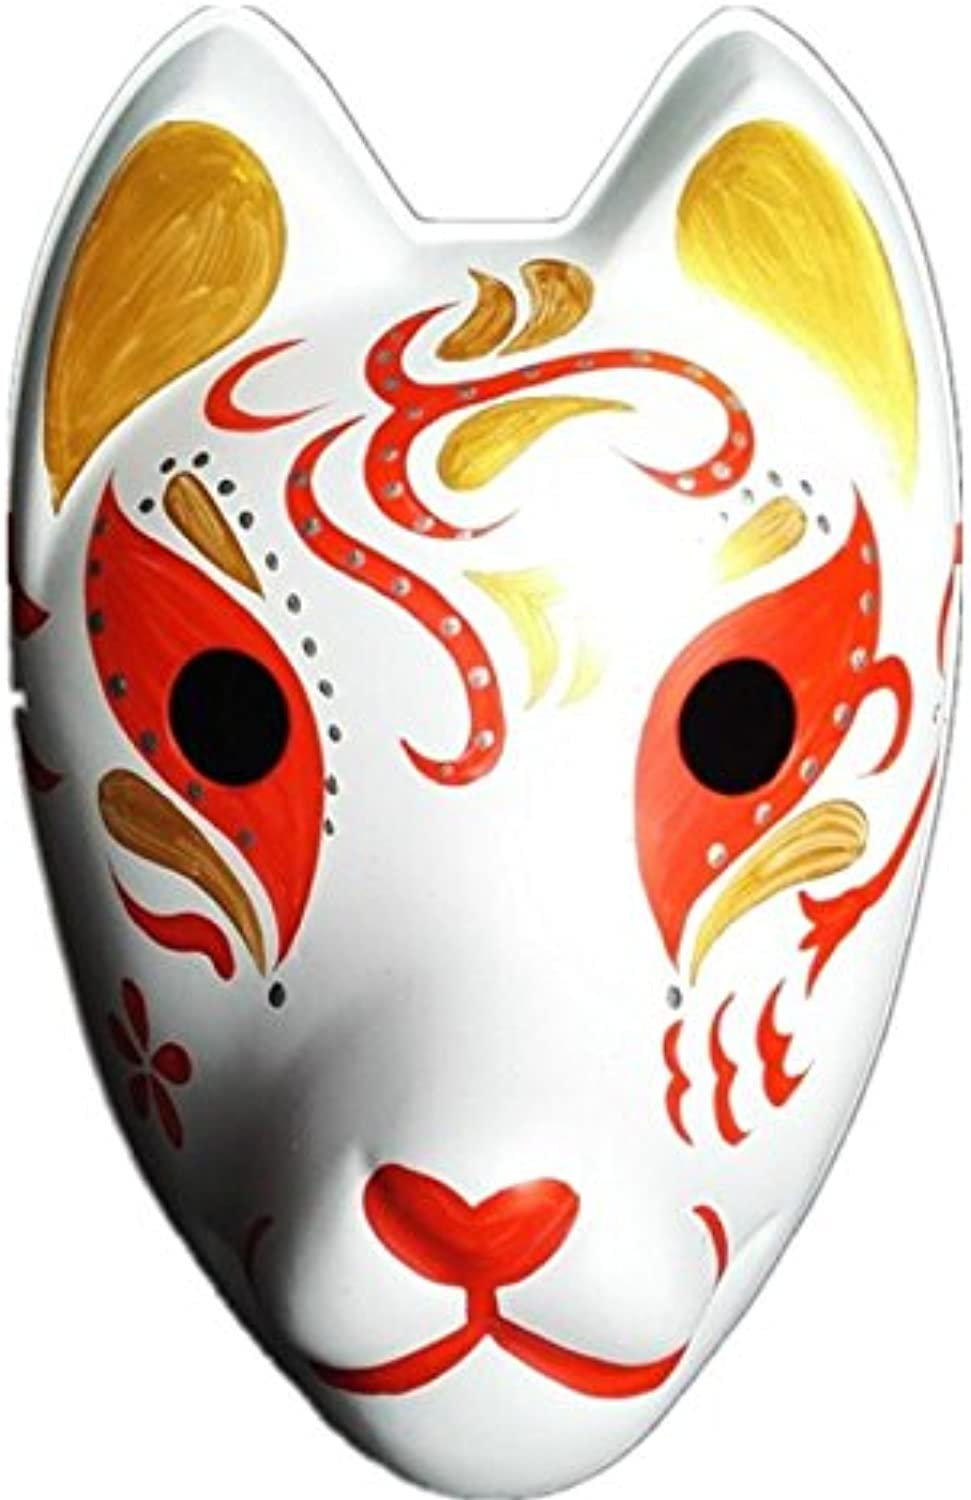 Mardi Gras Party Masquerade Mask,Firefly Forest Hand Painted Mask Full Face Mask Plastic HL22 Prom Masks